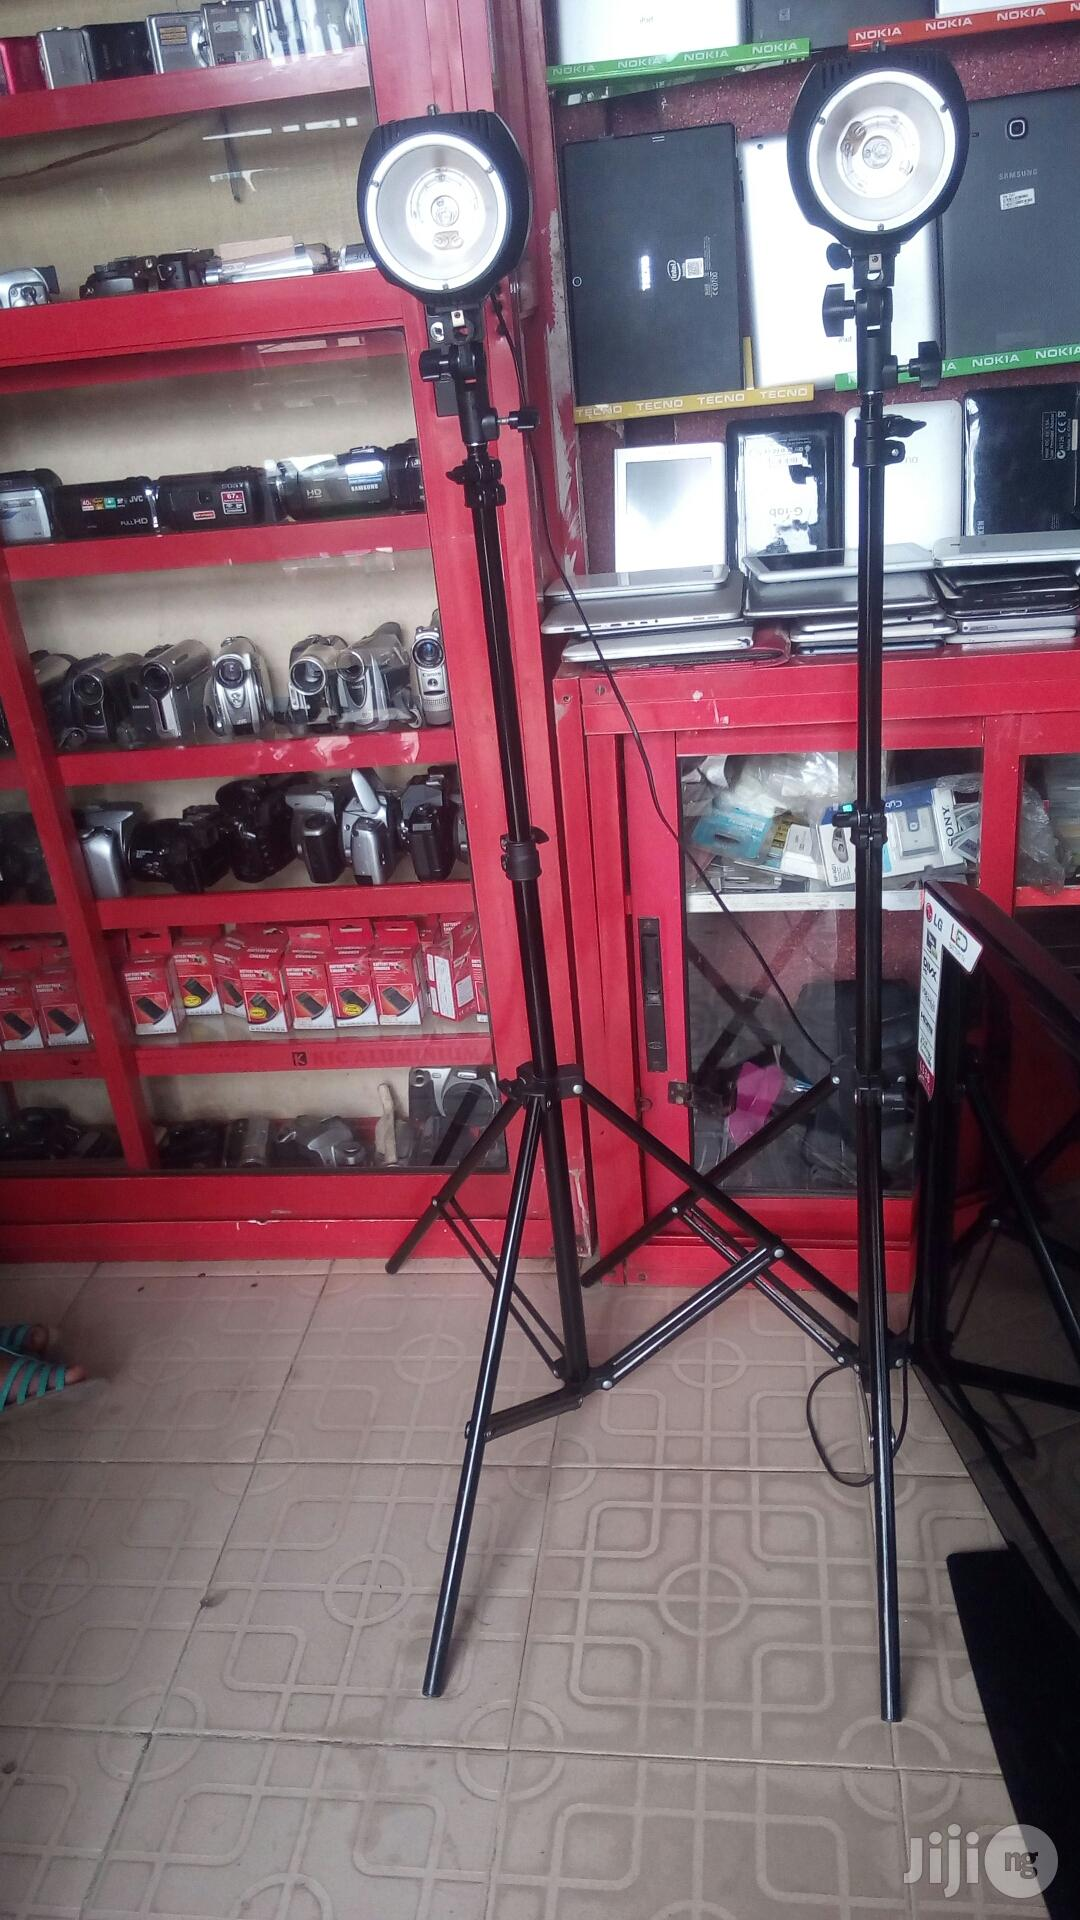 Studio Light | Photography & Video Services for sale in Ikeja, Lagos State, Nigeria